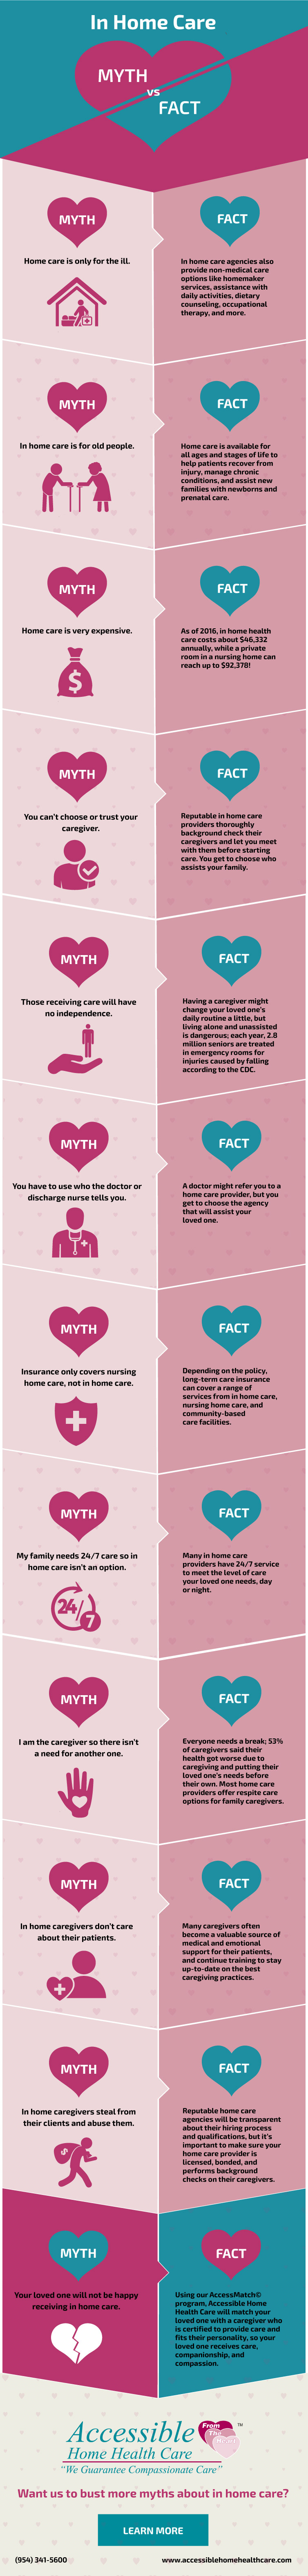 In home care myth vs fact infographic